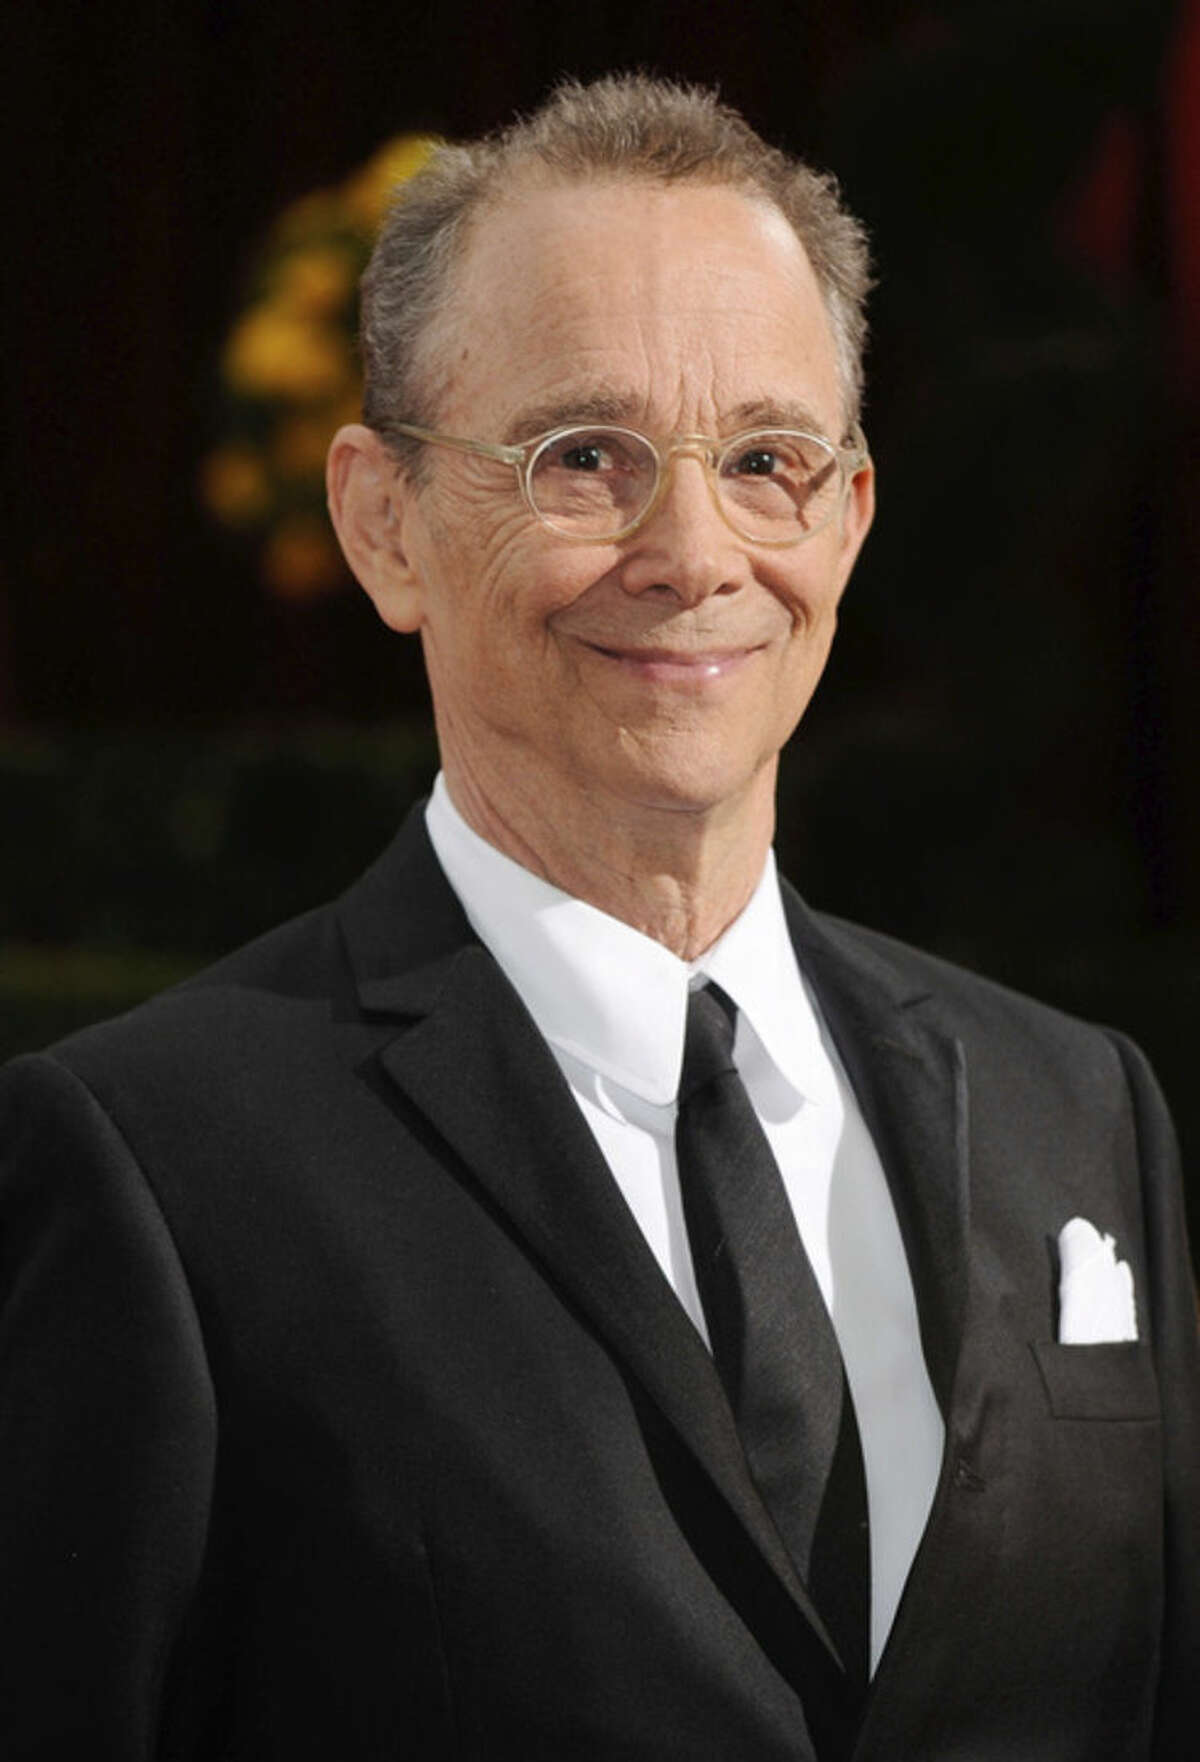 LOS ANGELES, CA - FEBRUARY 22: Actor Joel Grey arrives at the 81st Annual Academy Awards held at Kodak Theatre on February 22, 2009 in Los Angeles, California. (Photo by Frazer Harrison/Getty Images) *** Local Caption *** Joel Grey